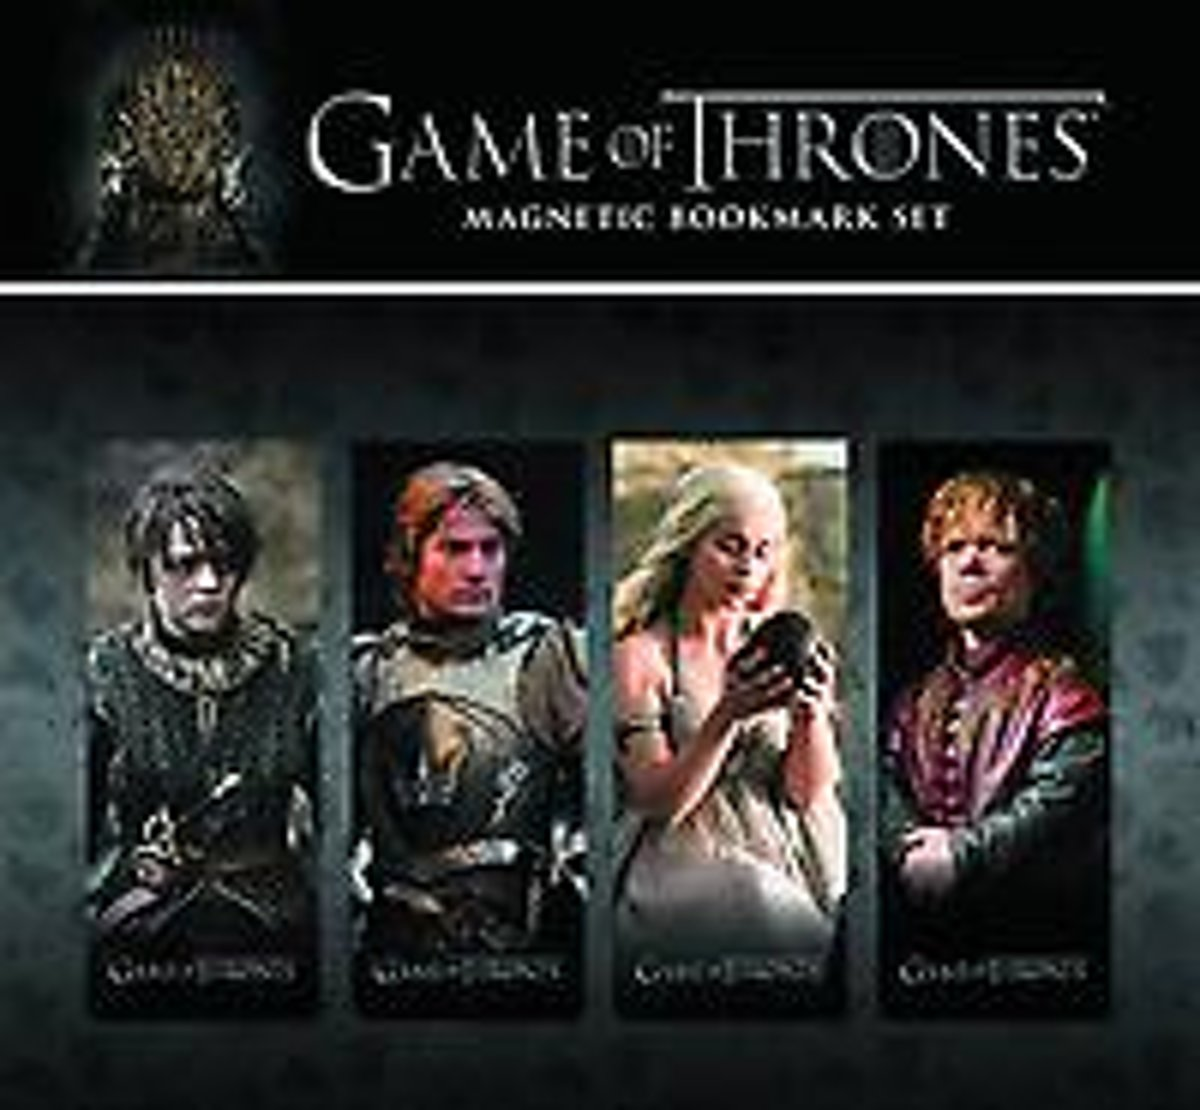 Game of Thrones Magnetic Book Mark Set 2